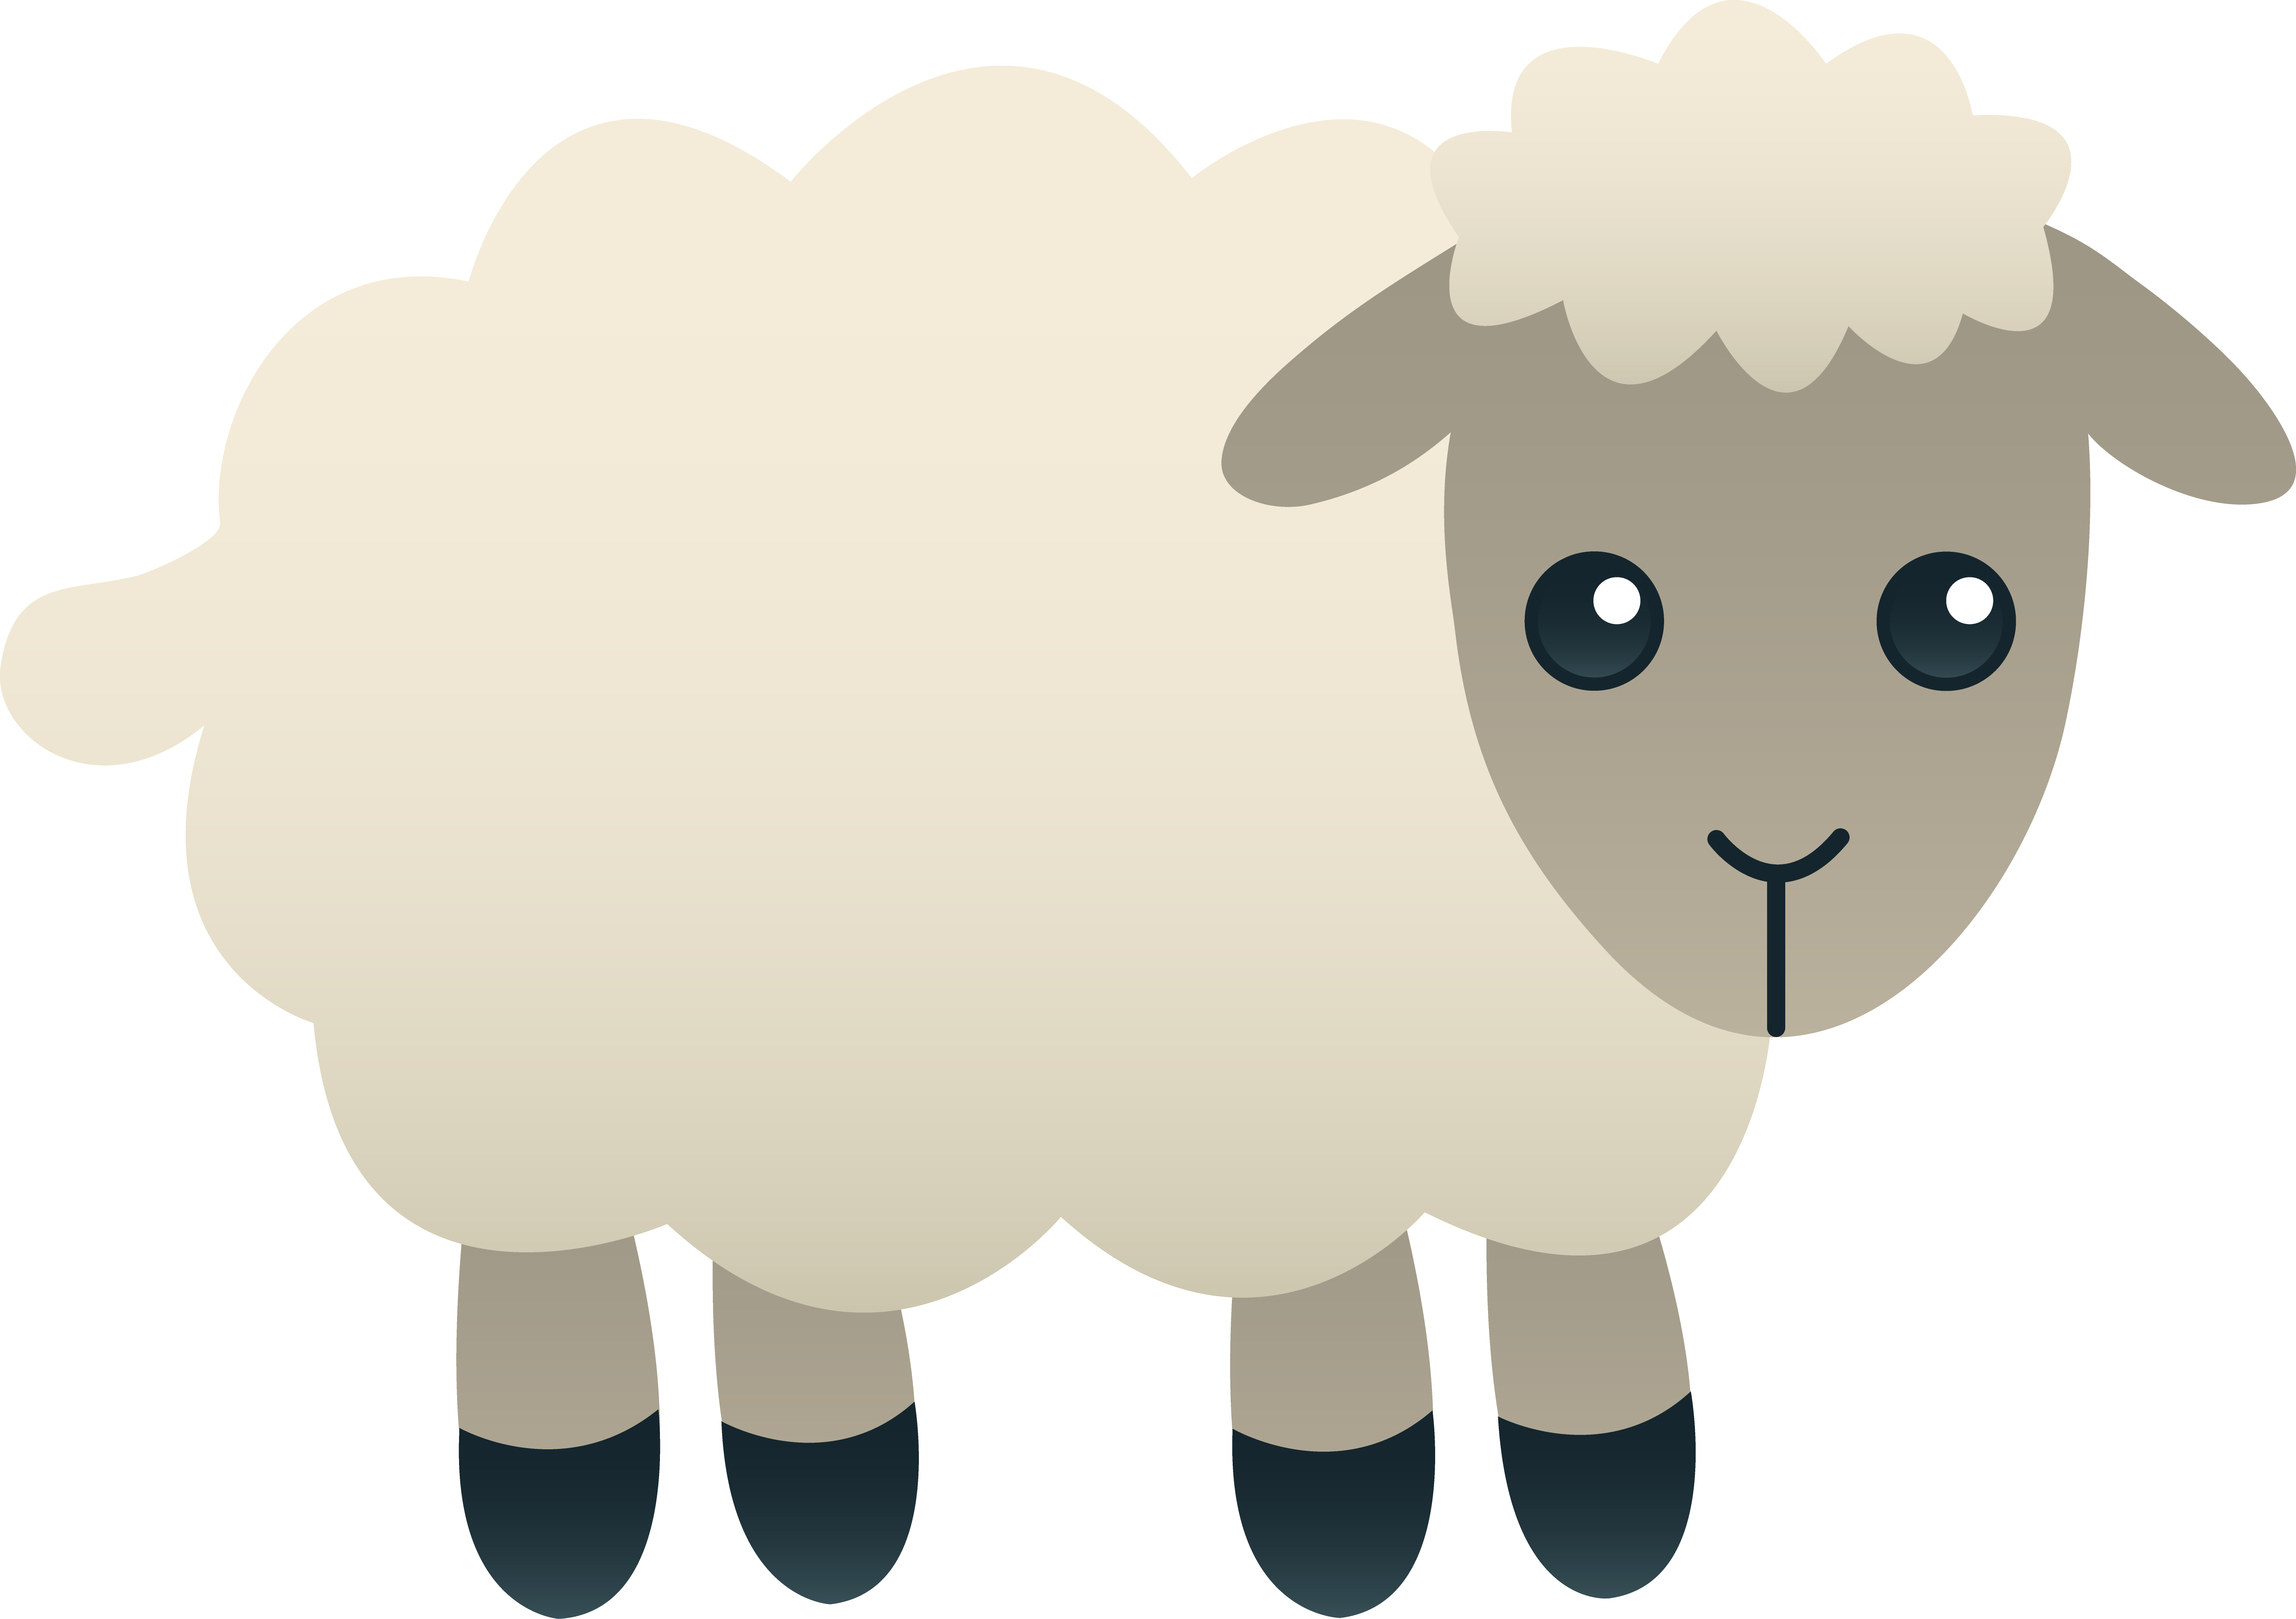 Baby sheep png. Fluffy white aiti as